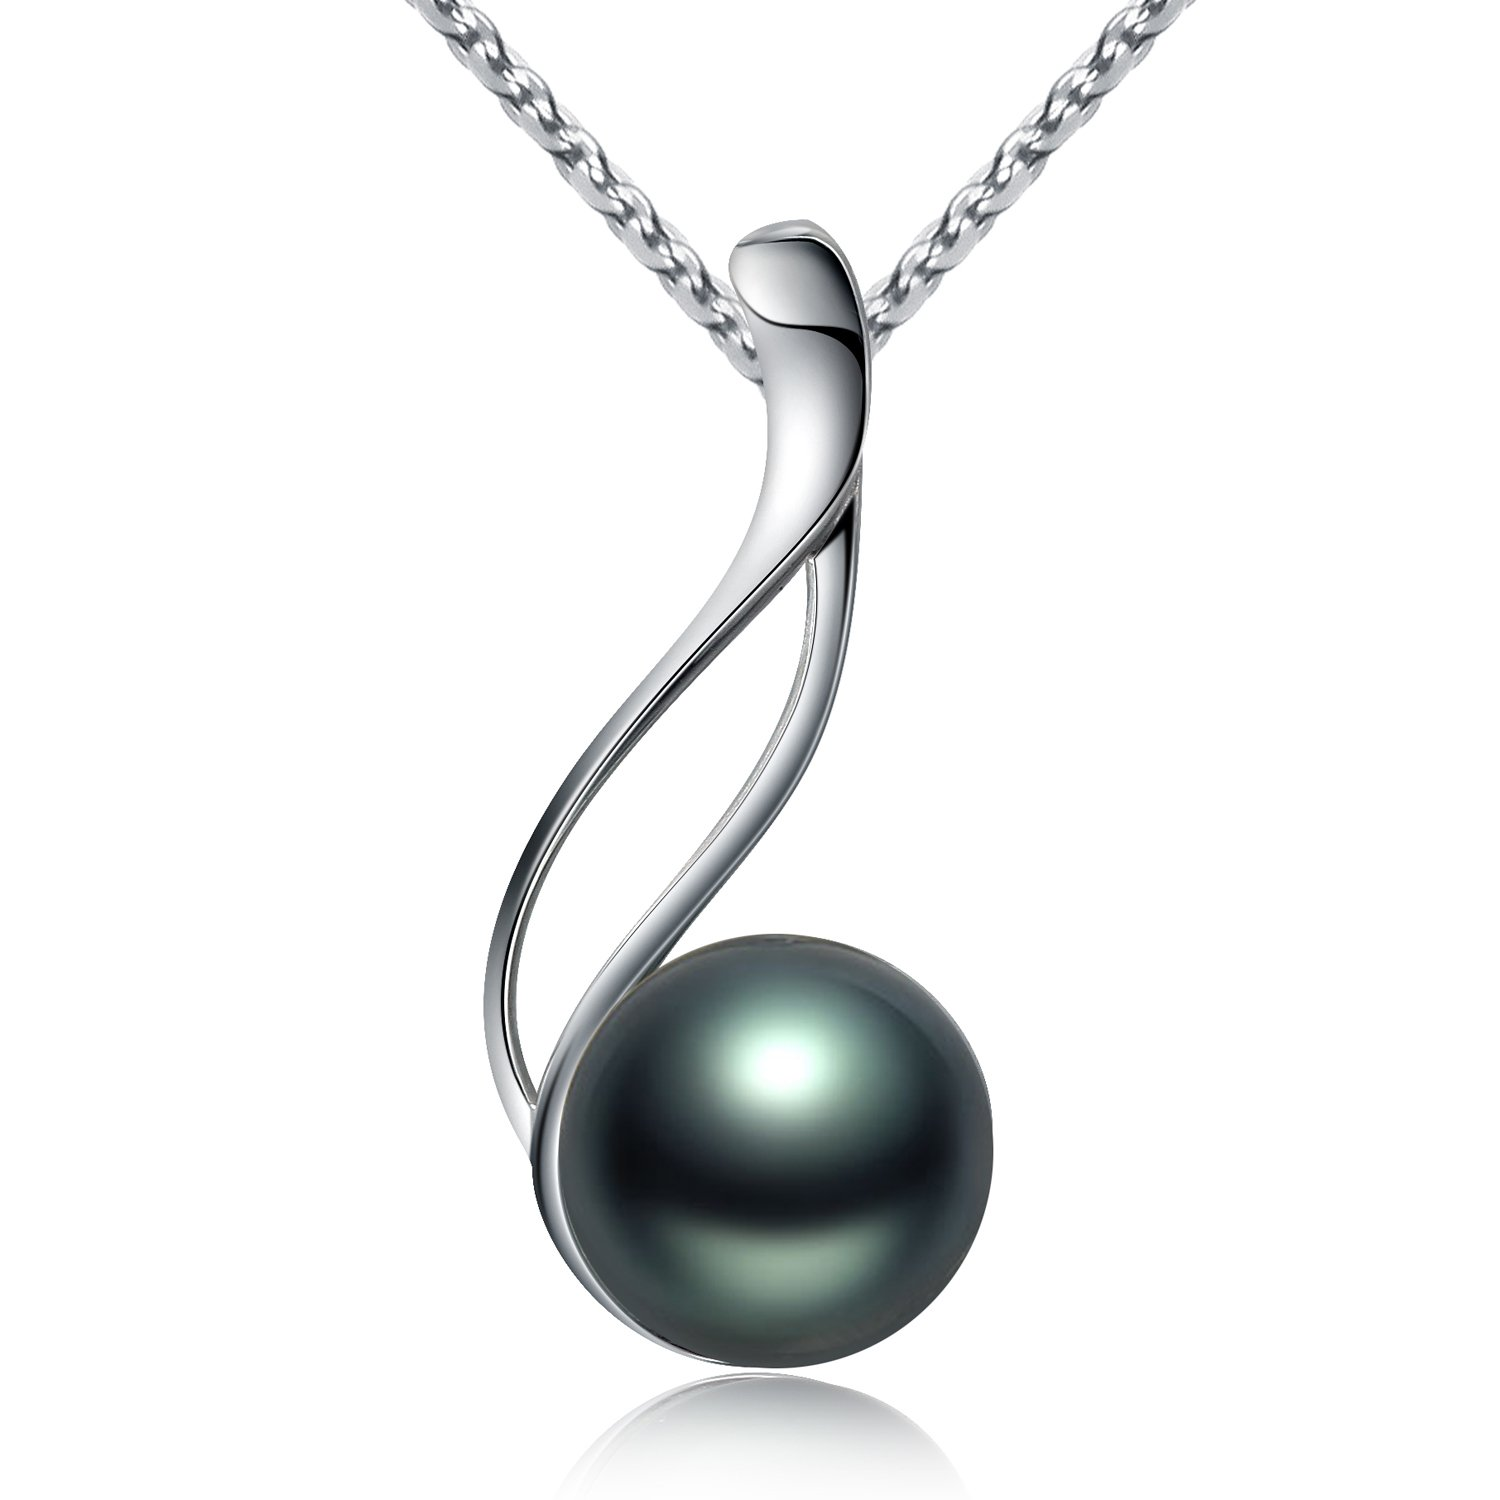 archives silver baroque peacock product timeless necklace black pearls giant pearl category sale color